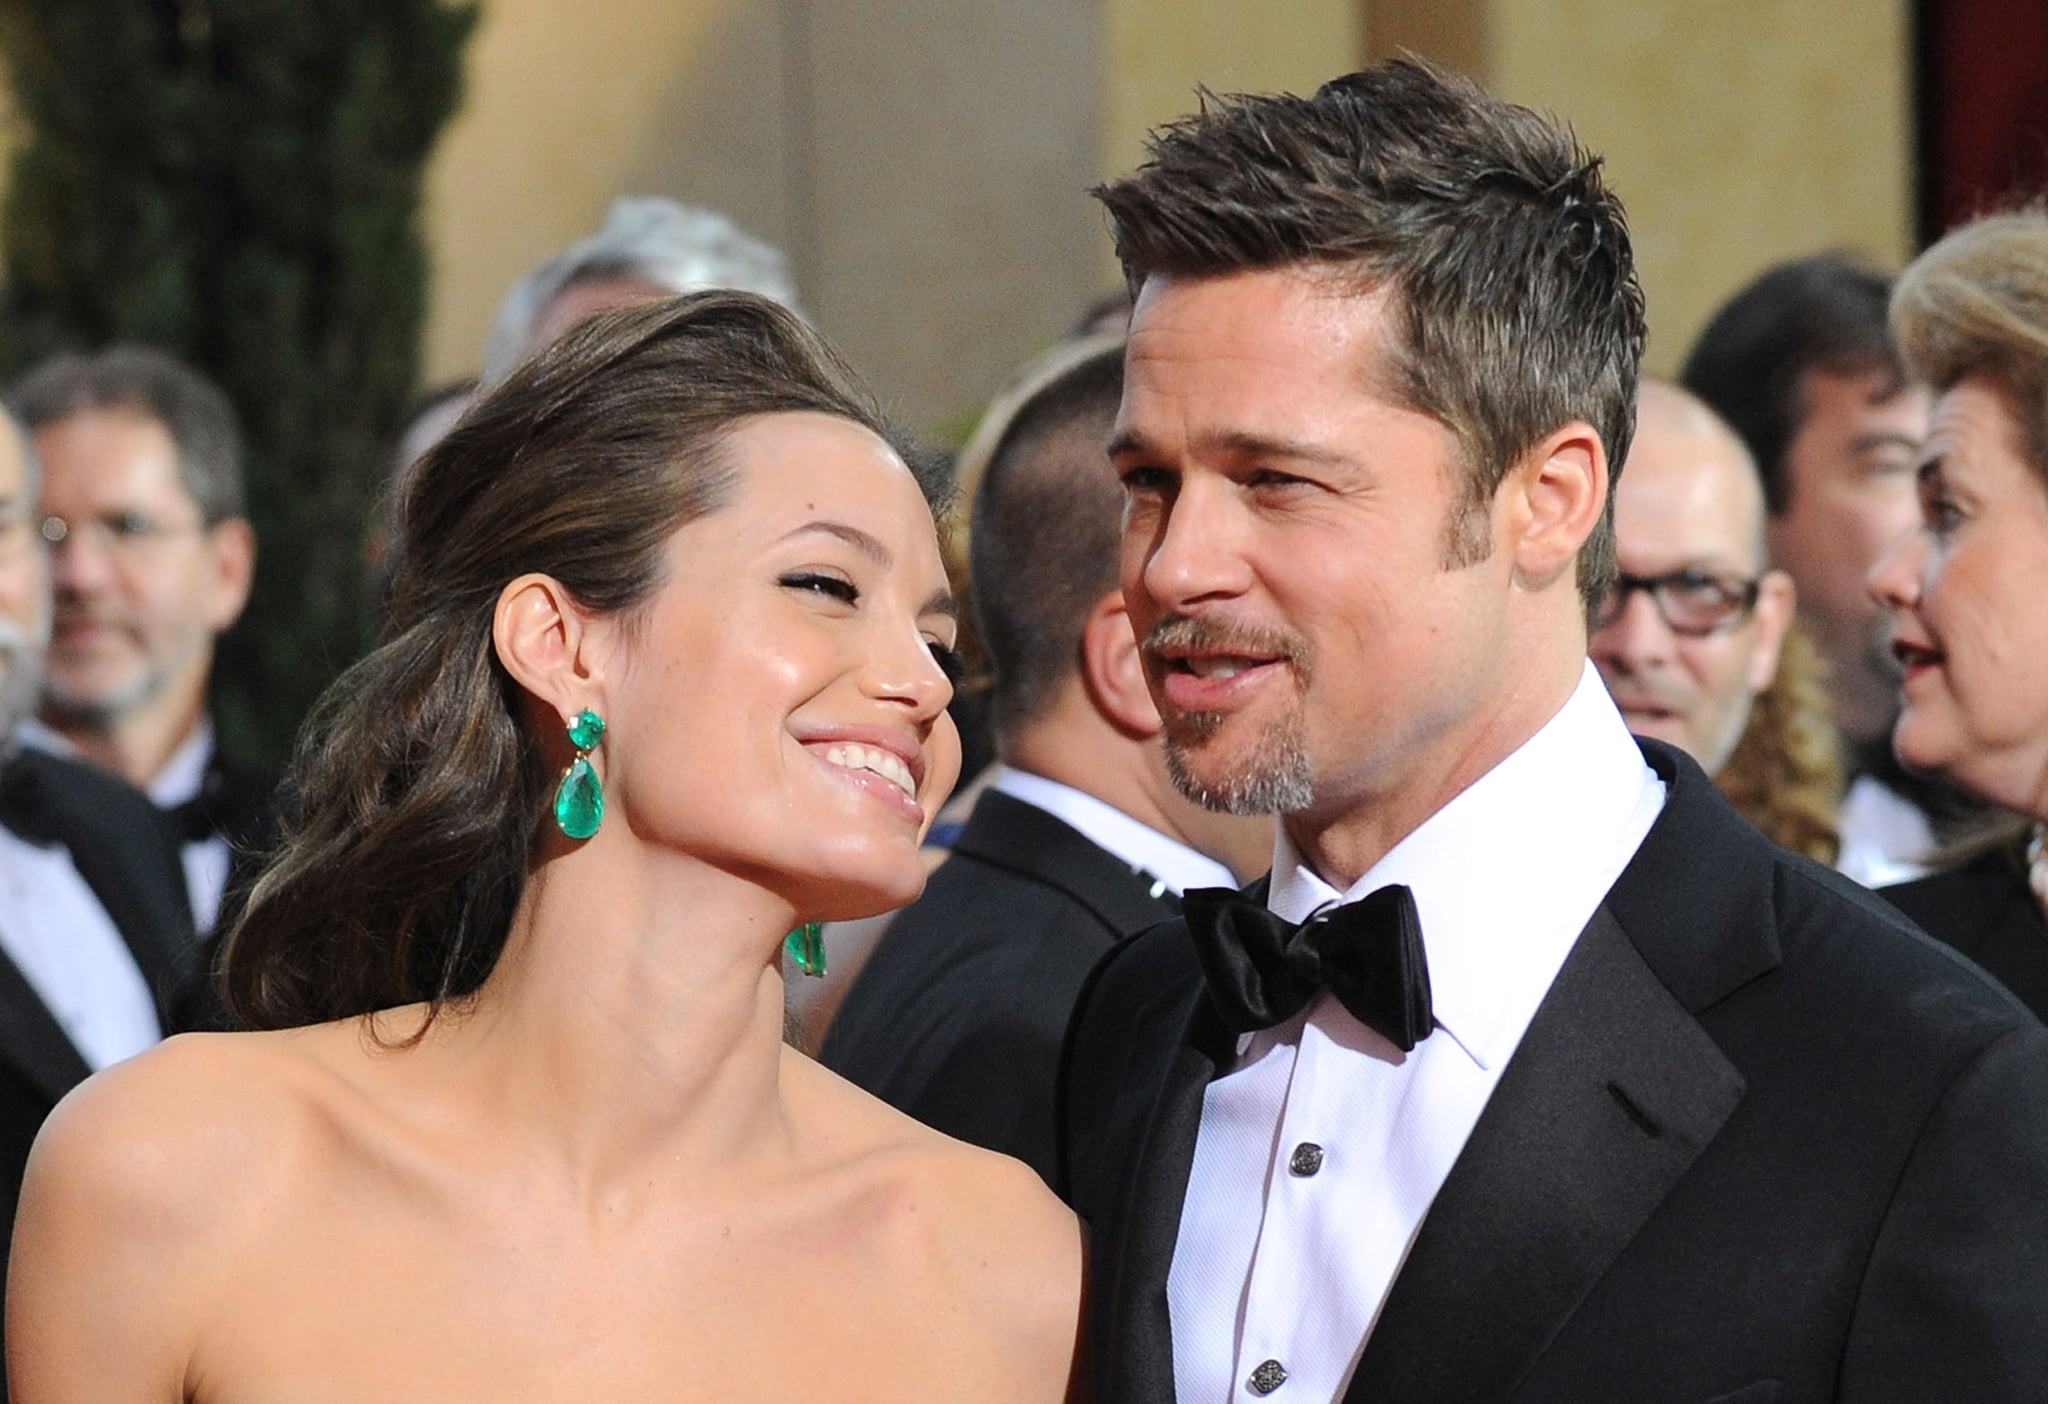 All eyes were on Angelina Jolie's earrings at the 2009 Academy Awards, but she only had eyes for Brad Pitt.